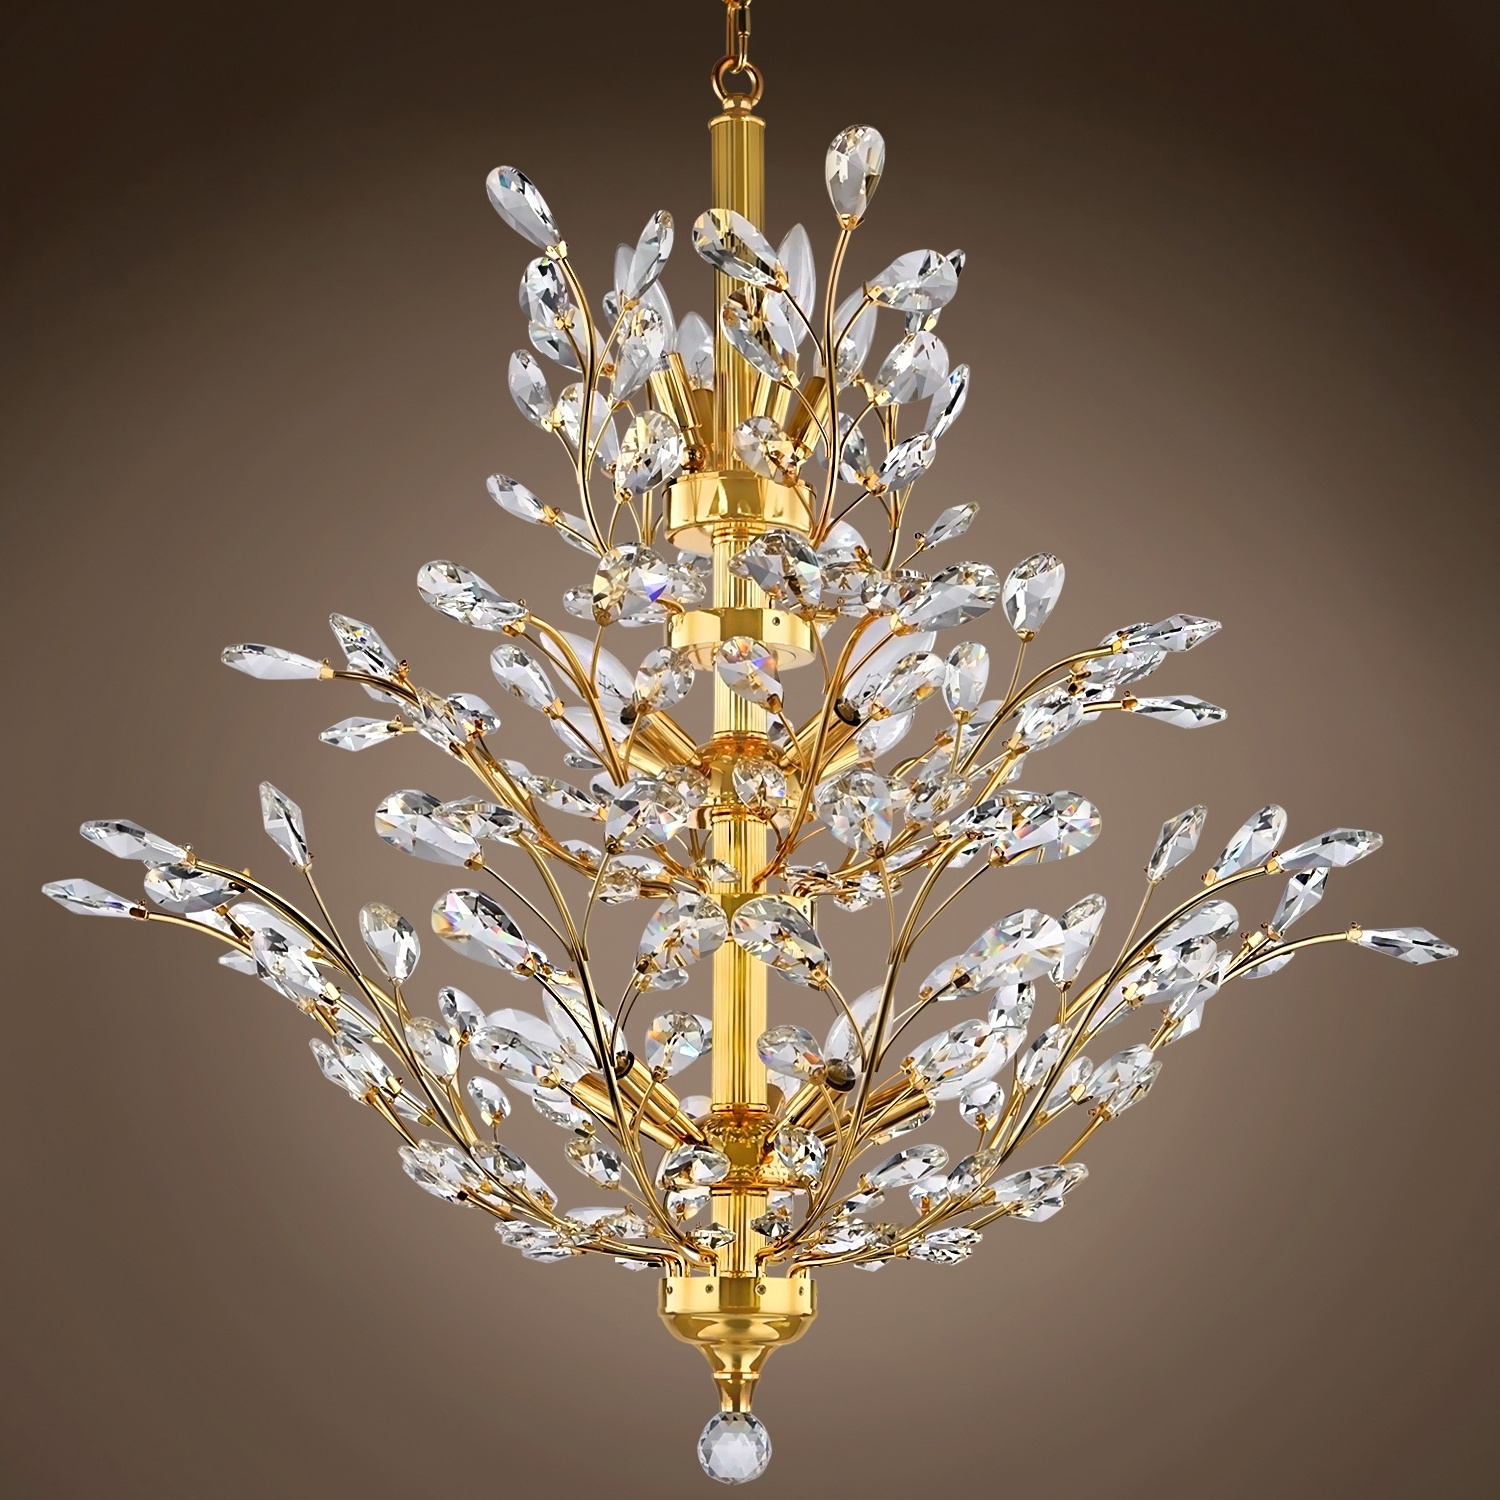 Joshua Marshal 700861 Branch Of Light 10 Light Gold Chandelier With Intended For Popular Crystal Branch Chandelier (View 7 of 15)